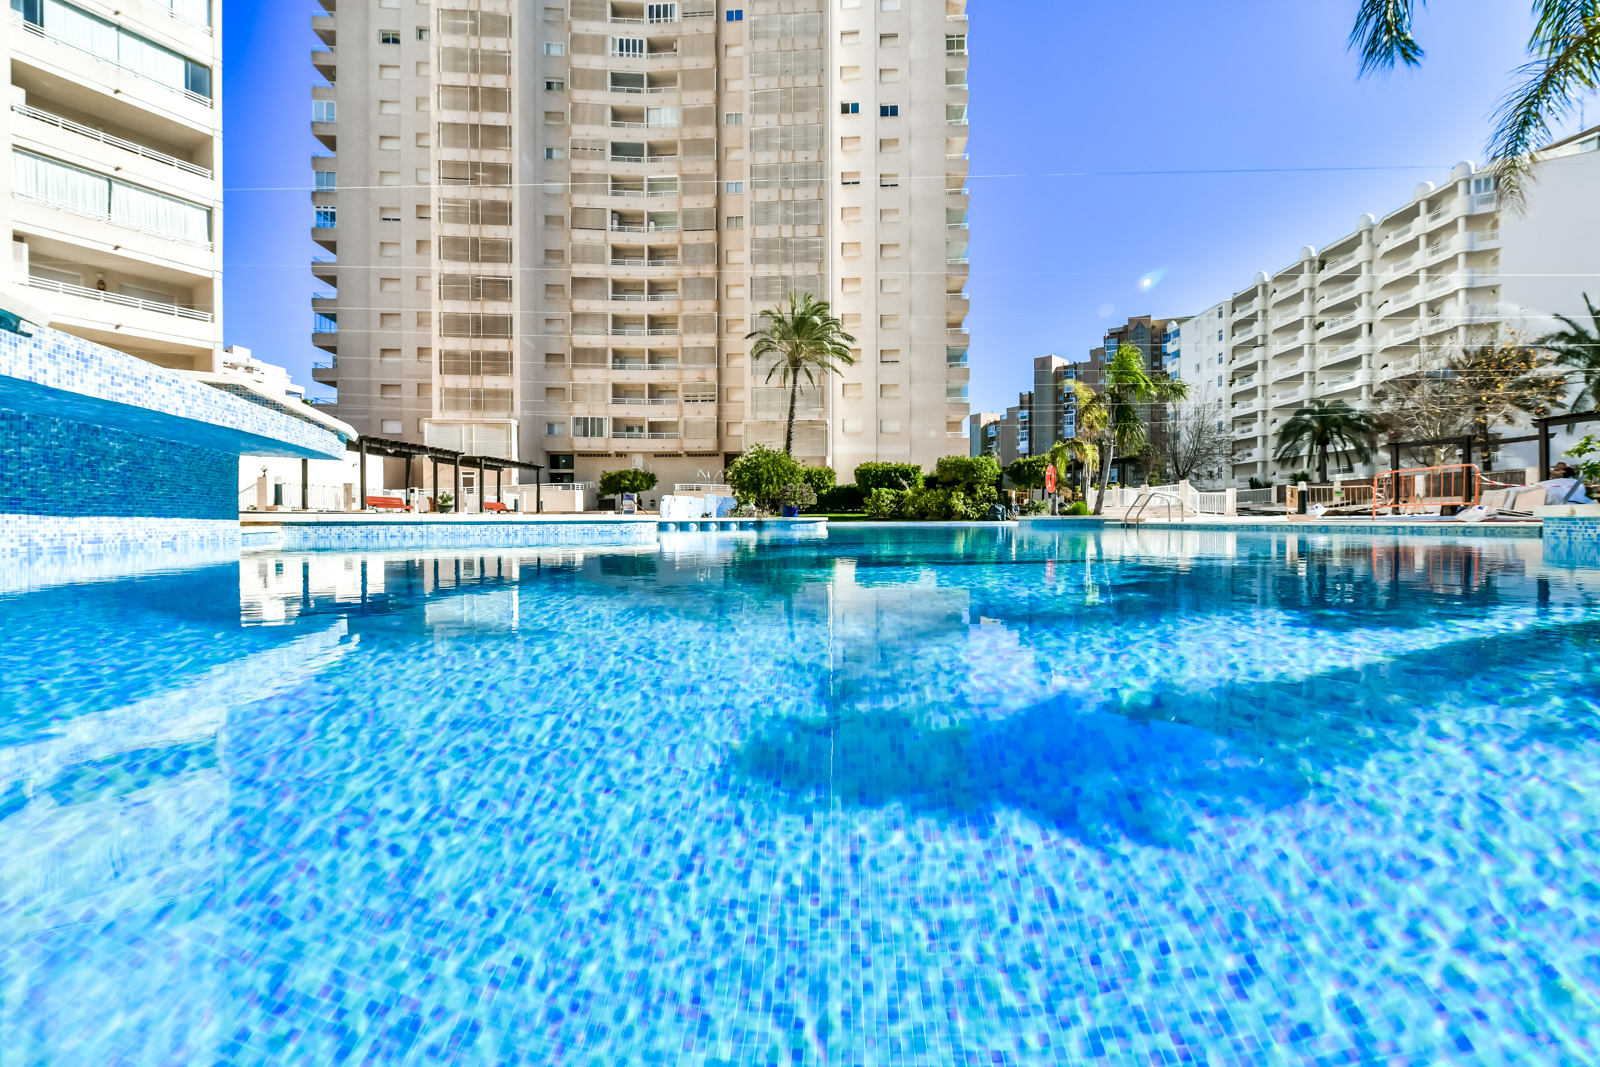 Apartamento Apolo XVI 16, Apartment  with communal pool in Calpe, on the Costa Blanca, Spain for 6 persons.....